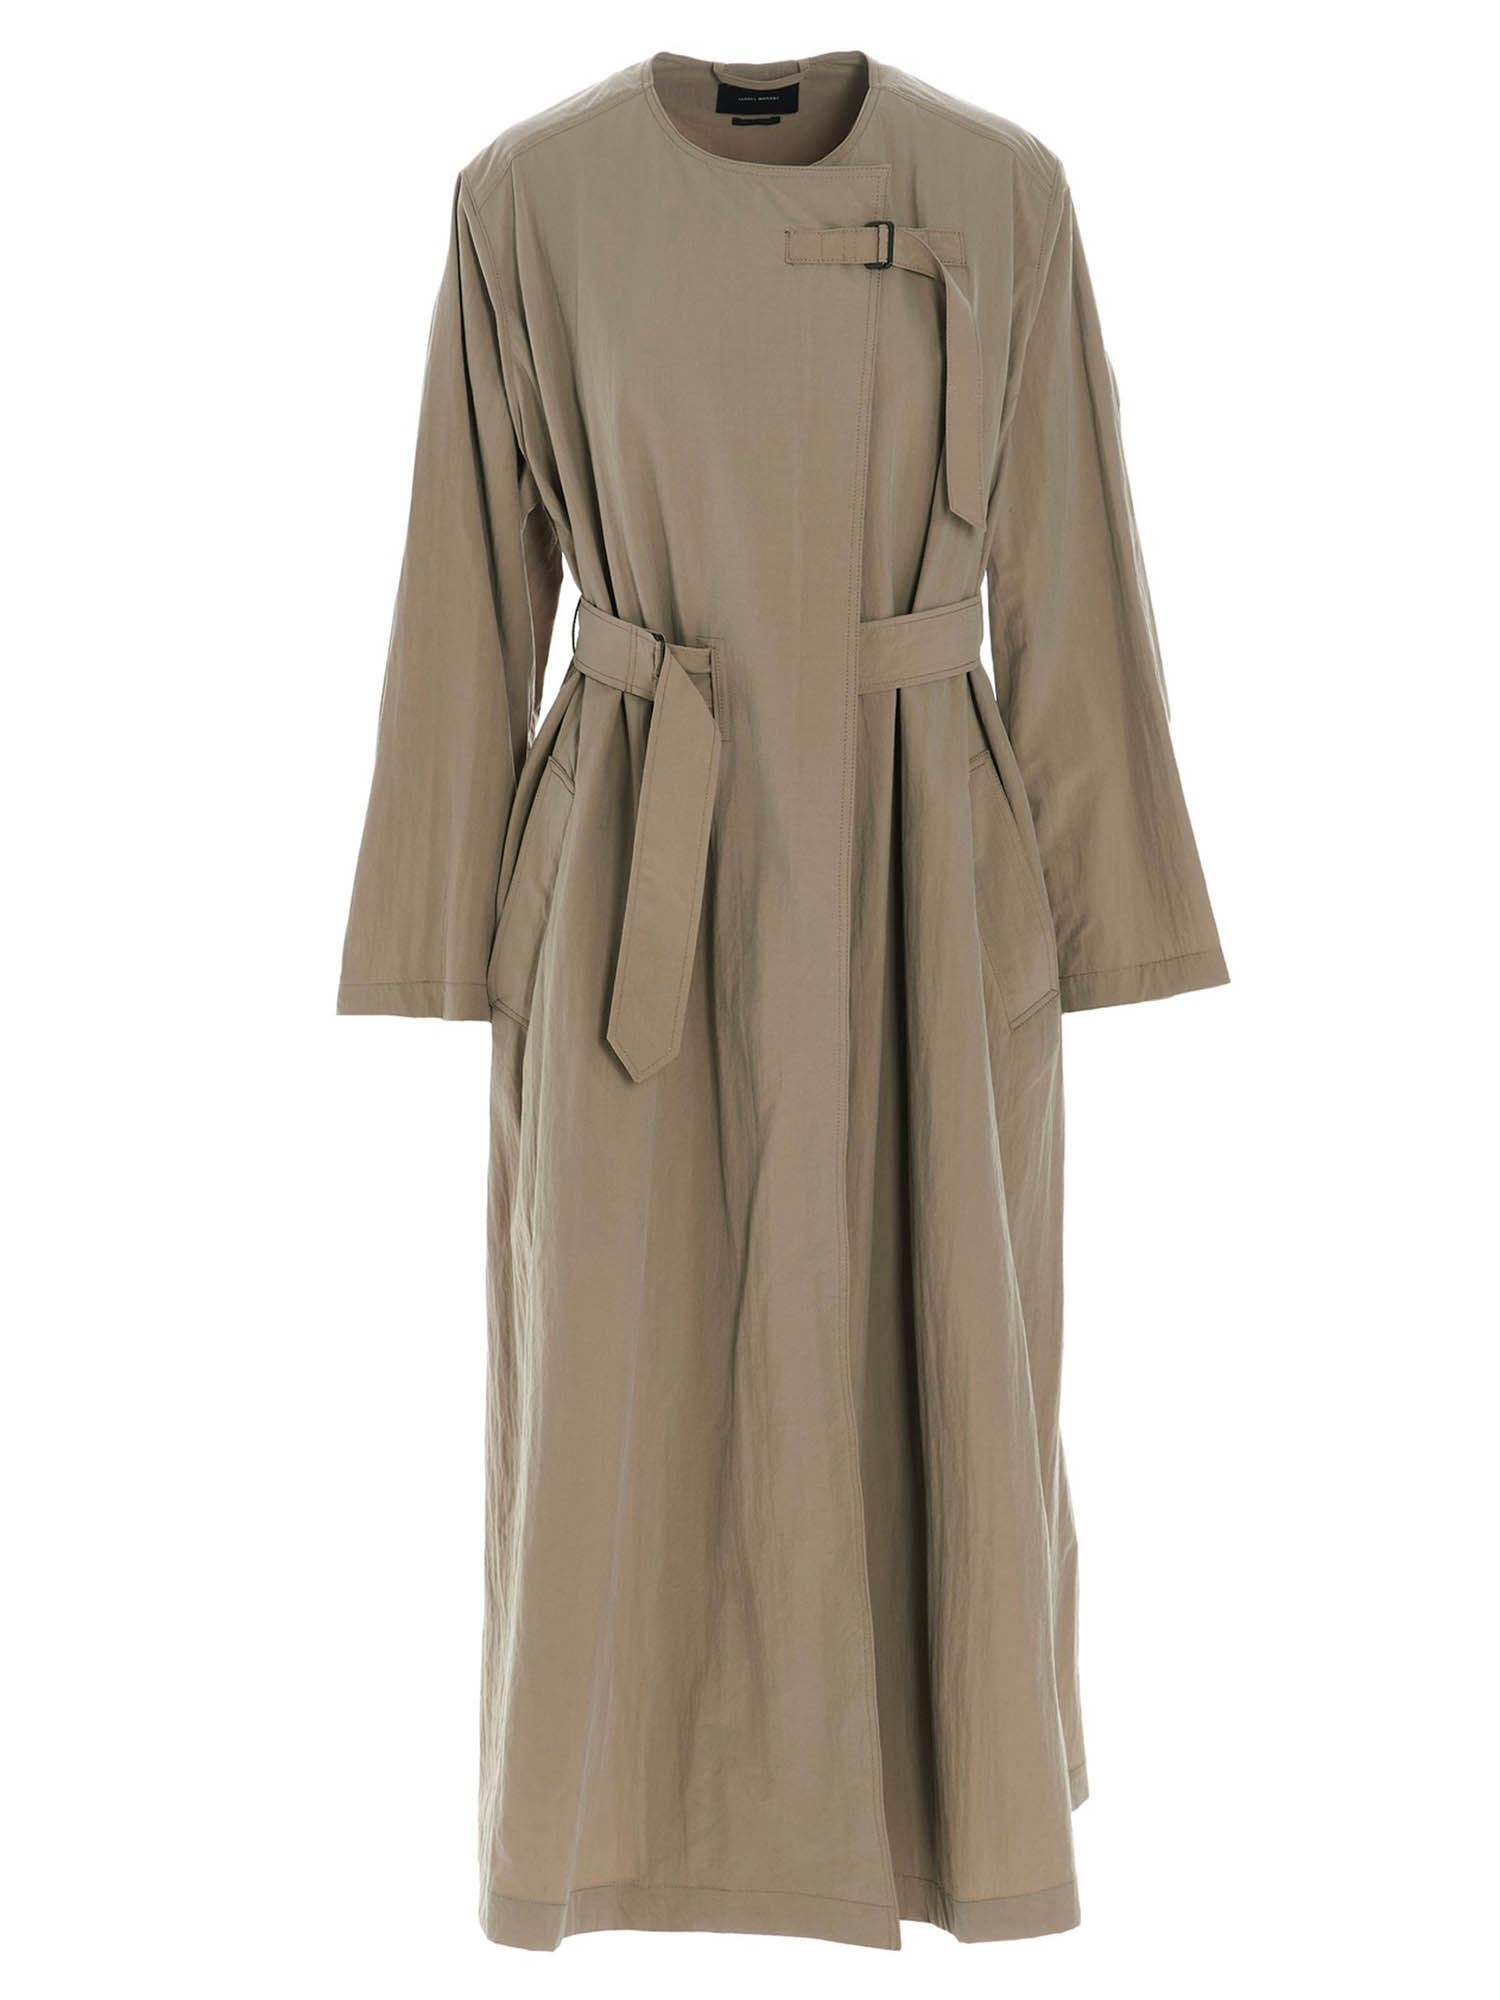 Isabel Marant ISABEL MARANT ILIFAWN TRENCH COAT IN BEIGE